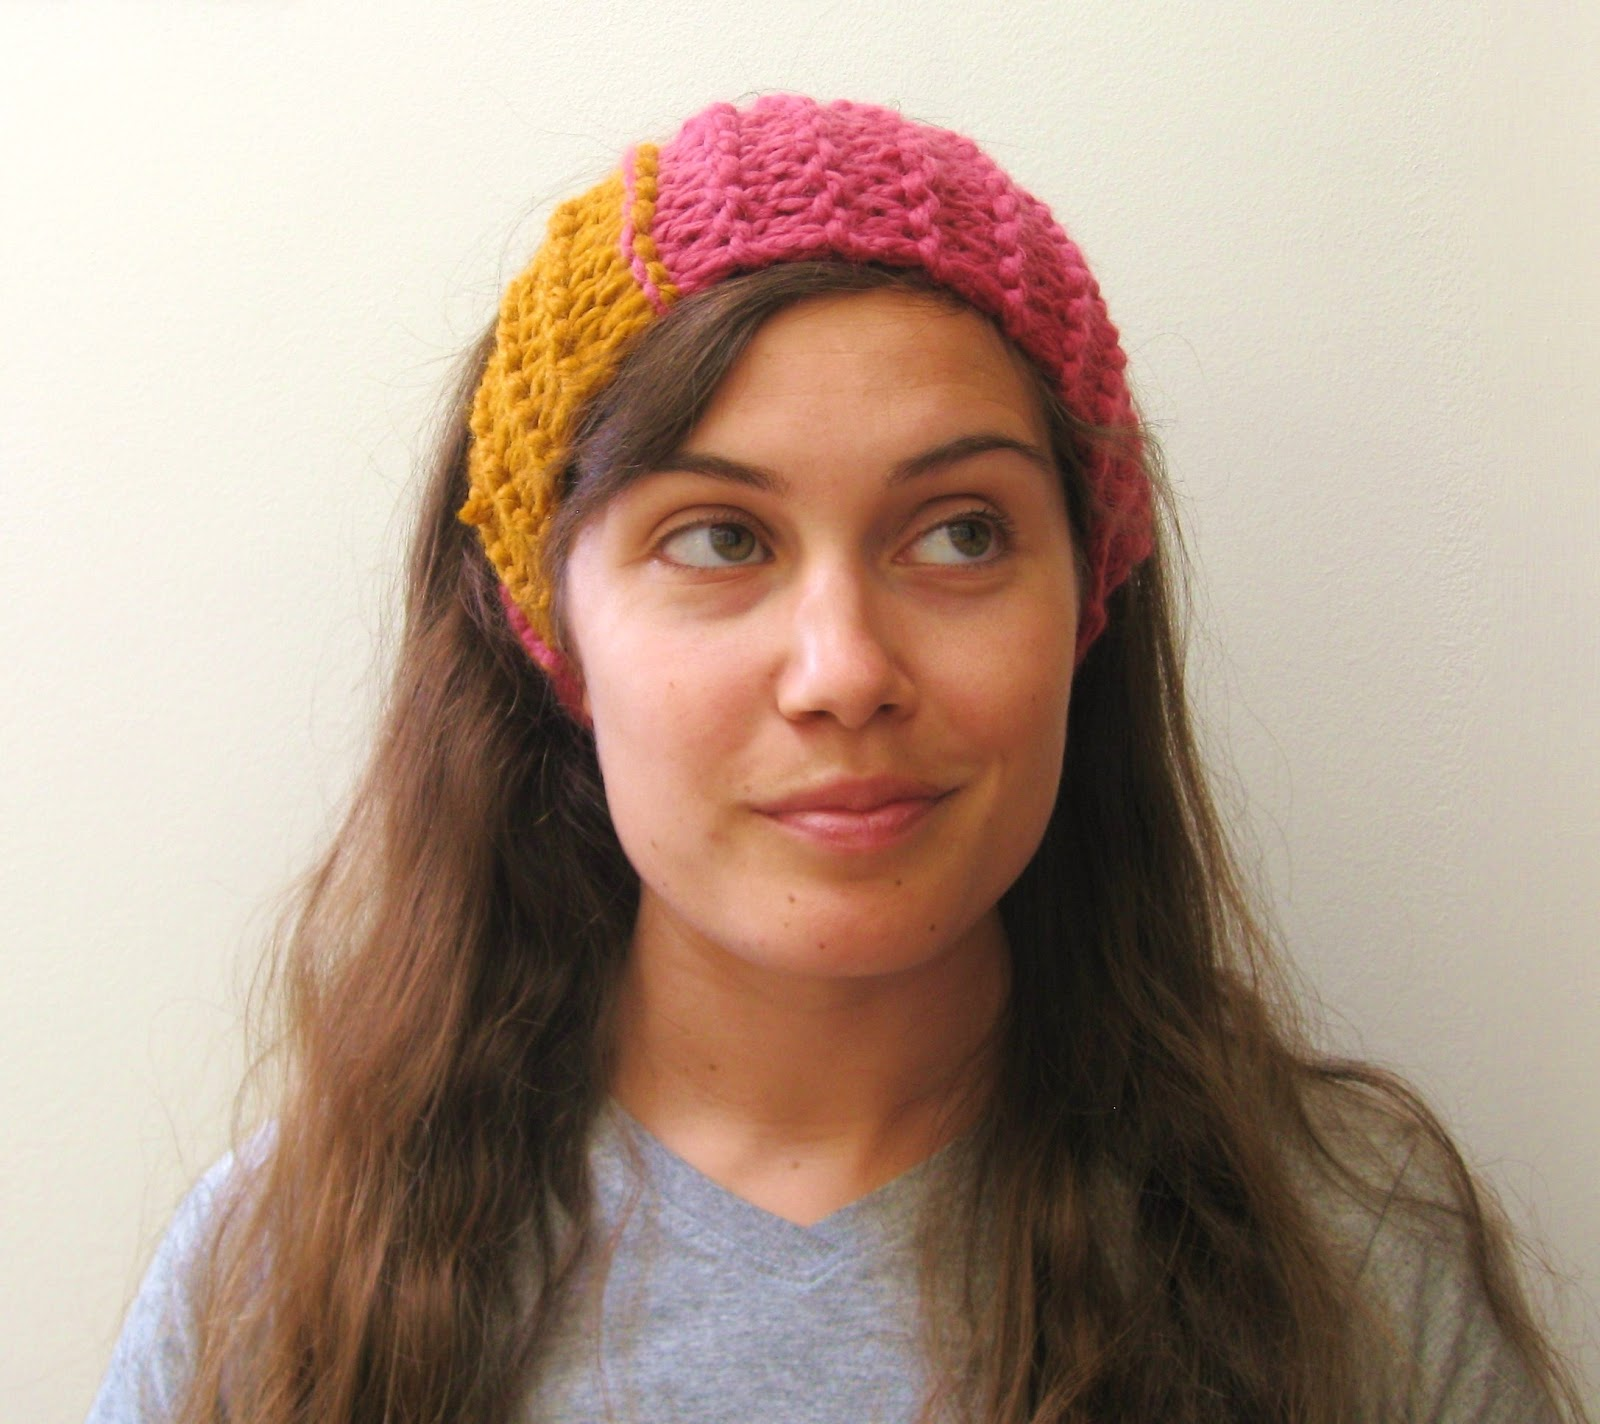 Free Knitting Pattern Chunky Headband : megan E sass handknits: Free Knitting Pattern: Chunky Colorblock Headband / E...